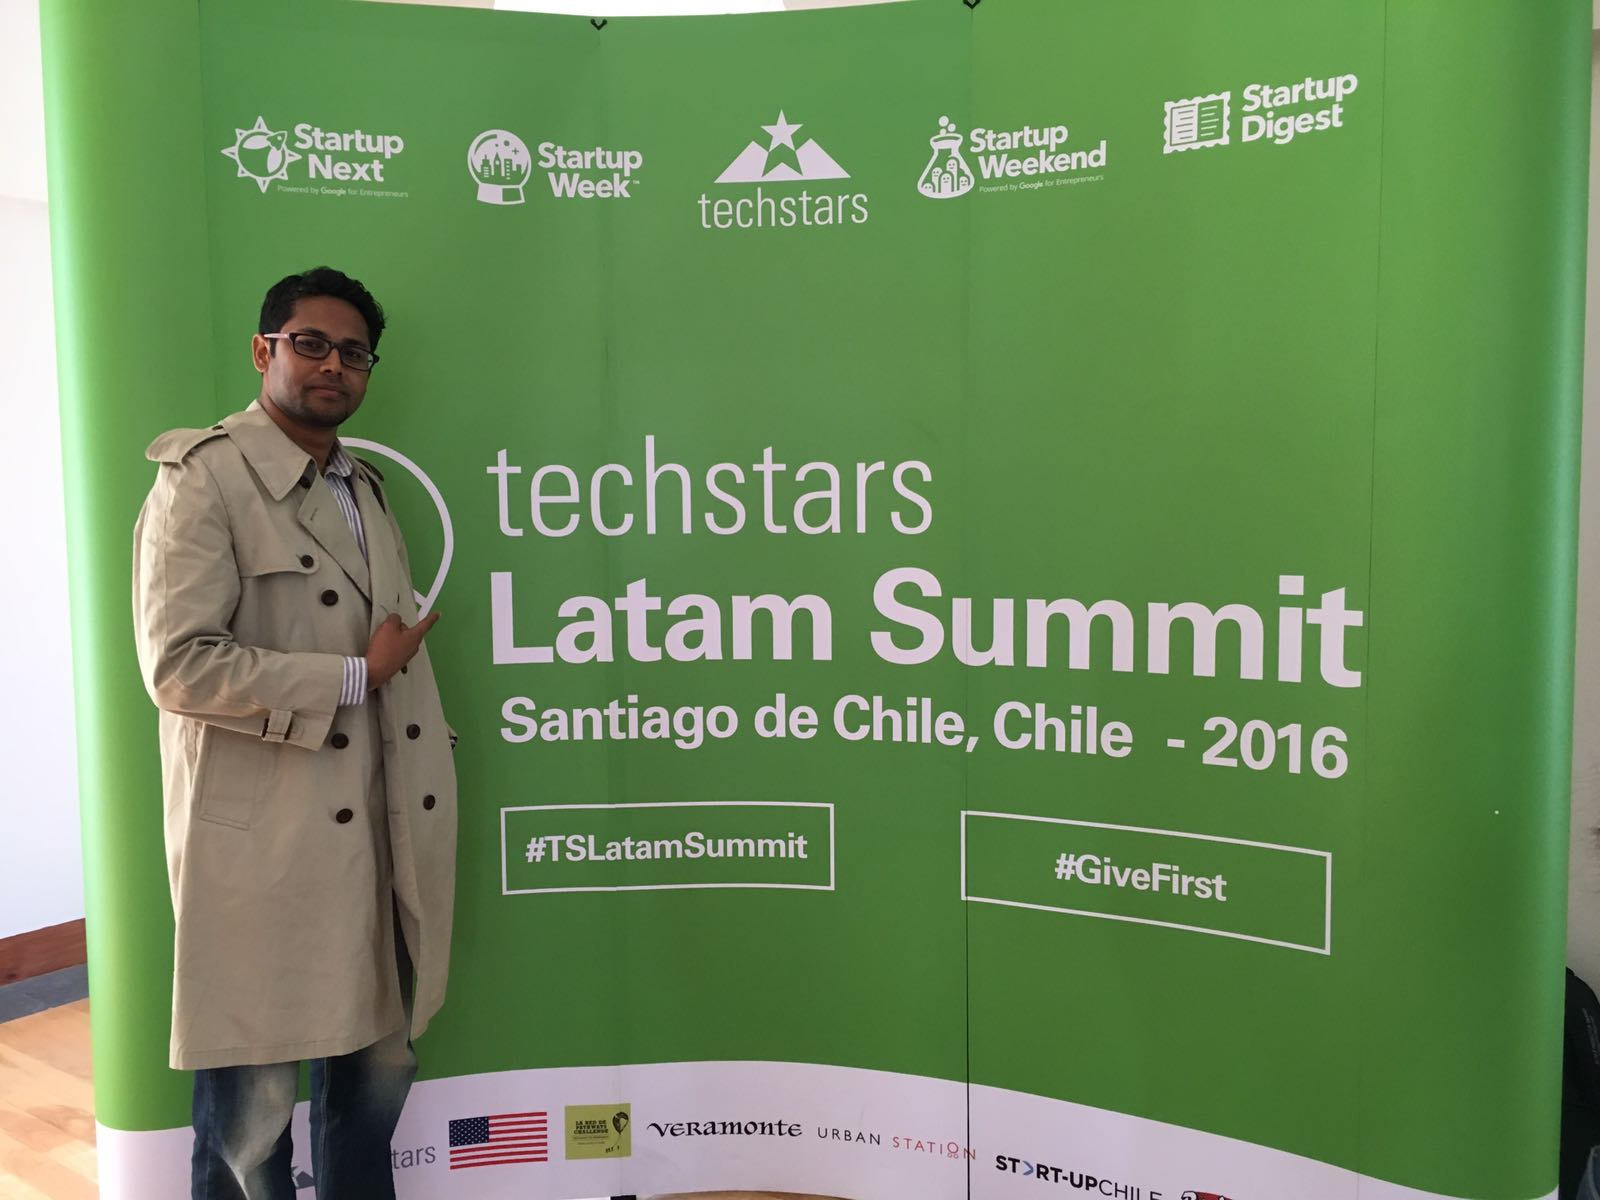 What a day to end @LatamSW !! Muy divertido! Learning to #GiveFirst ! #TSLatamSummit #startup https://t.co/xMfuns9aPT